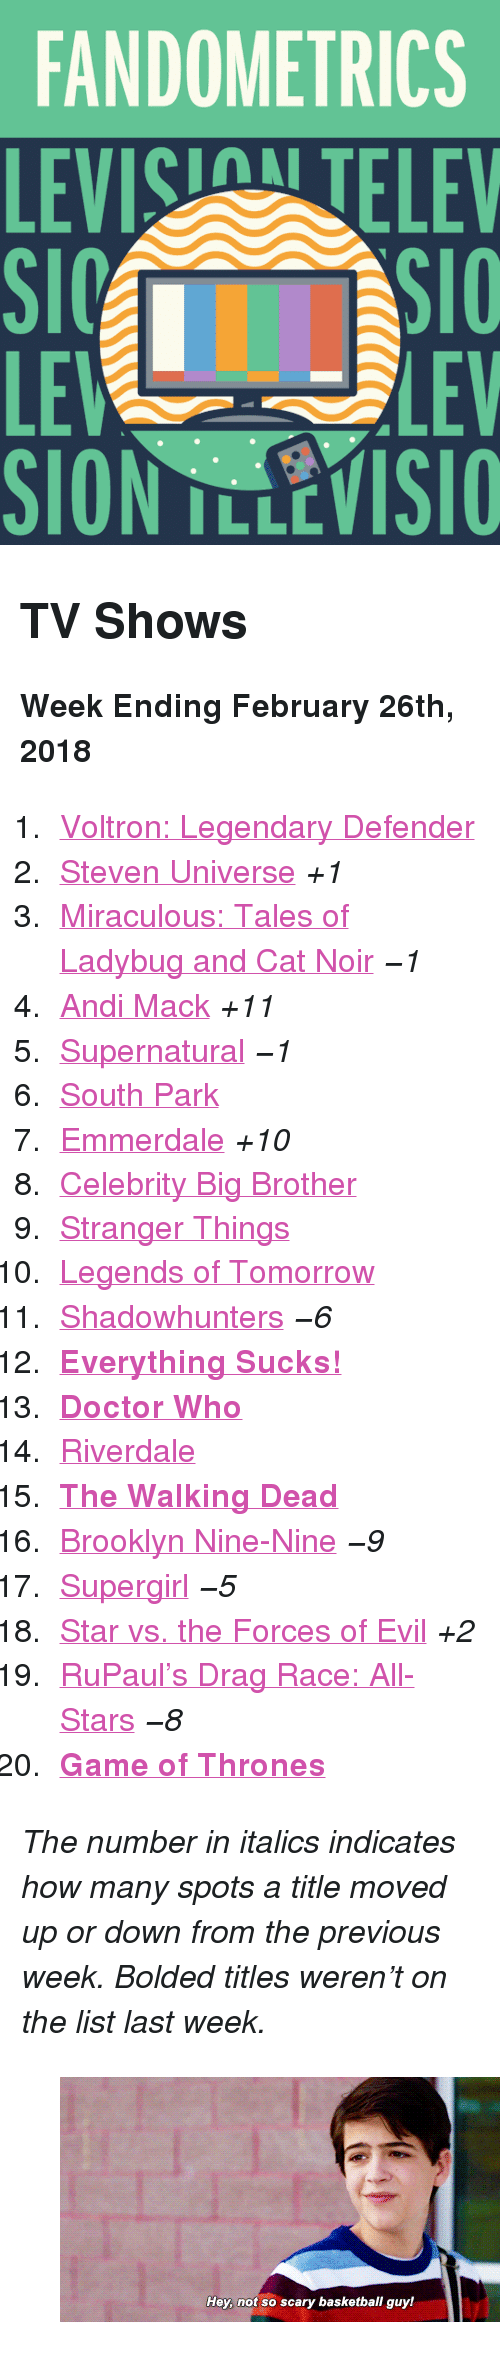 """Levis: FANDOMETRICS  LEVIS TELEV  LE  LEV <h2>TV Shows</h2><p><b>Week Ending February 26th, 2018</b></p><ol><li><a href=""""http://www.tumblr.com/search/voltron"""">Voltron: Legendary Defender</a></li>  <li><a href=""""http://www.tumblr.com/search/steven%20universe"""">Steven Universe</a><i>+1</i></li>  <li><a href=""""http://www.tumblr.com/search/miraculous%20ladybug"""">Miraculous: Tales of Ladybug and Cat Noir</a><i><i>−1</i></i></li>  <li><a href=""""http://www.tumblr.com/search/andi%20mack"""">Andi Mack</a><i>+11</i></li>  <li><a href=""""http://www.tumblr.com/search/supernatural"""">Supernatural</a><i><i>−1</i></i></li>  <li><a href=""""http://www.tumblr.com/search/south%20park"""">South Park</a></li>  <li><a href=""""http://www.tumblr.com/search/emmerdale"""">Emmerdale</a><i>+10</i></li>  <li><a href=""""http://www.tumblr.com/search/cbbus"""">Celebrity Big Brother</a></li>  <li><a href=""""http://www.tumblr.com/search/stranger%20things"""">Stranger Things</a></li>  <li><a href=""""http://www.tumblr.com/search/legends%20of%20tomorrow"""">Legends of Tomorrow</a></li>  <li><a href=""""http://www.tumblr.com/search/shadowhunters"""">Shadowhunters</a><i><i>−6</i></i></li>  <li><a href=""""http://www.tumblr.com/search/everything%20sucks!""""><b>Everything Sucks!</b></a></li>  <li><a href=""""http://www.tumblr.com/search/doctor%20who""""><b>Doctor Who</b></a></li>  <li><a href=""""http://www.tumblr.com/search/riverdale"""">Riverdale</a></li>  <li><a href=""""http://www.tumblr.com/search/the%20walking%20dead""""><b>The Walking Dead</b></a></li>  <li><a href=""""http://www.tumblr.com/search/brooklyn%20nine%20nine"""">Brooklyn Nine-Nine</a><i><i>−9</i></i></li>  <li><a href=""""http://www.tumblr.com/search/supergirl"""">Supergirl</a><i><i>−5</i></i></li>  <li><a href=""""http://www.tumblr.com/search/star%20vs%20the%20forces%20of%20evil"""">Star vs. the Forces of Evil</a><i>+2</i></li>  <li><a href=""""http://www.tumblr.com/search/rupaul's%20drag%20race"""">RuPaul&rsquo;s Drag Race: All-Stars</a><i><i>−8</i></i></li>  <li><a href=""""http://www.tumblr.com/search/game%20of%20thrones""""><b"""